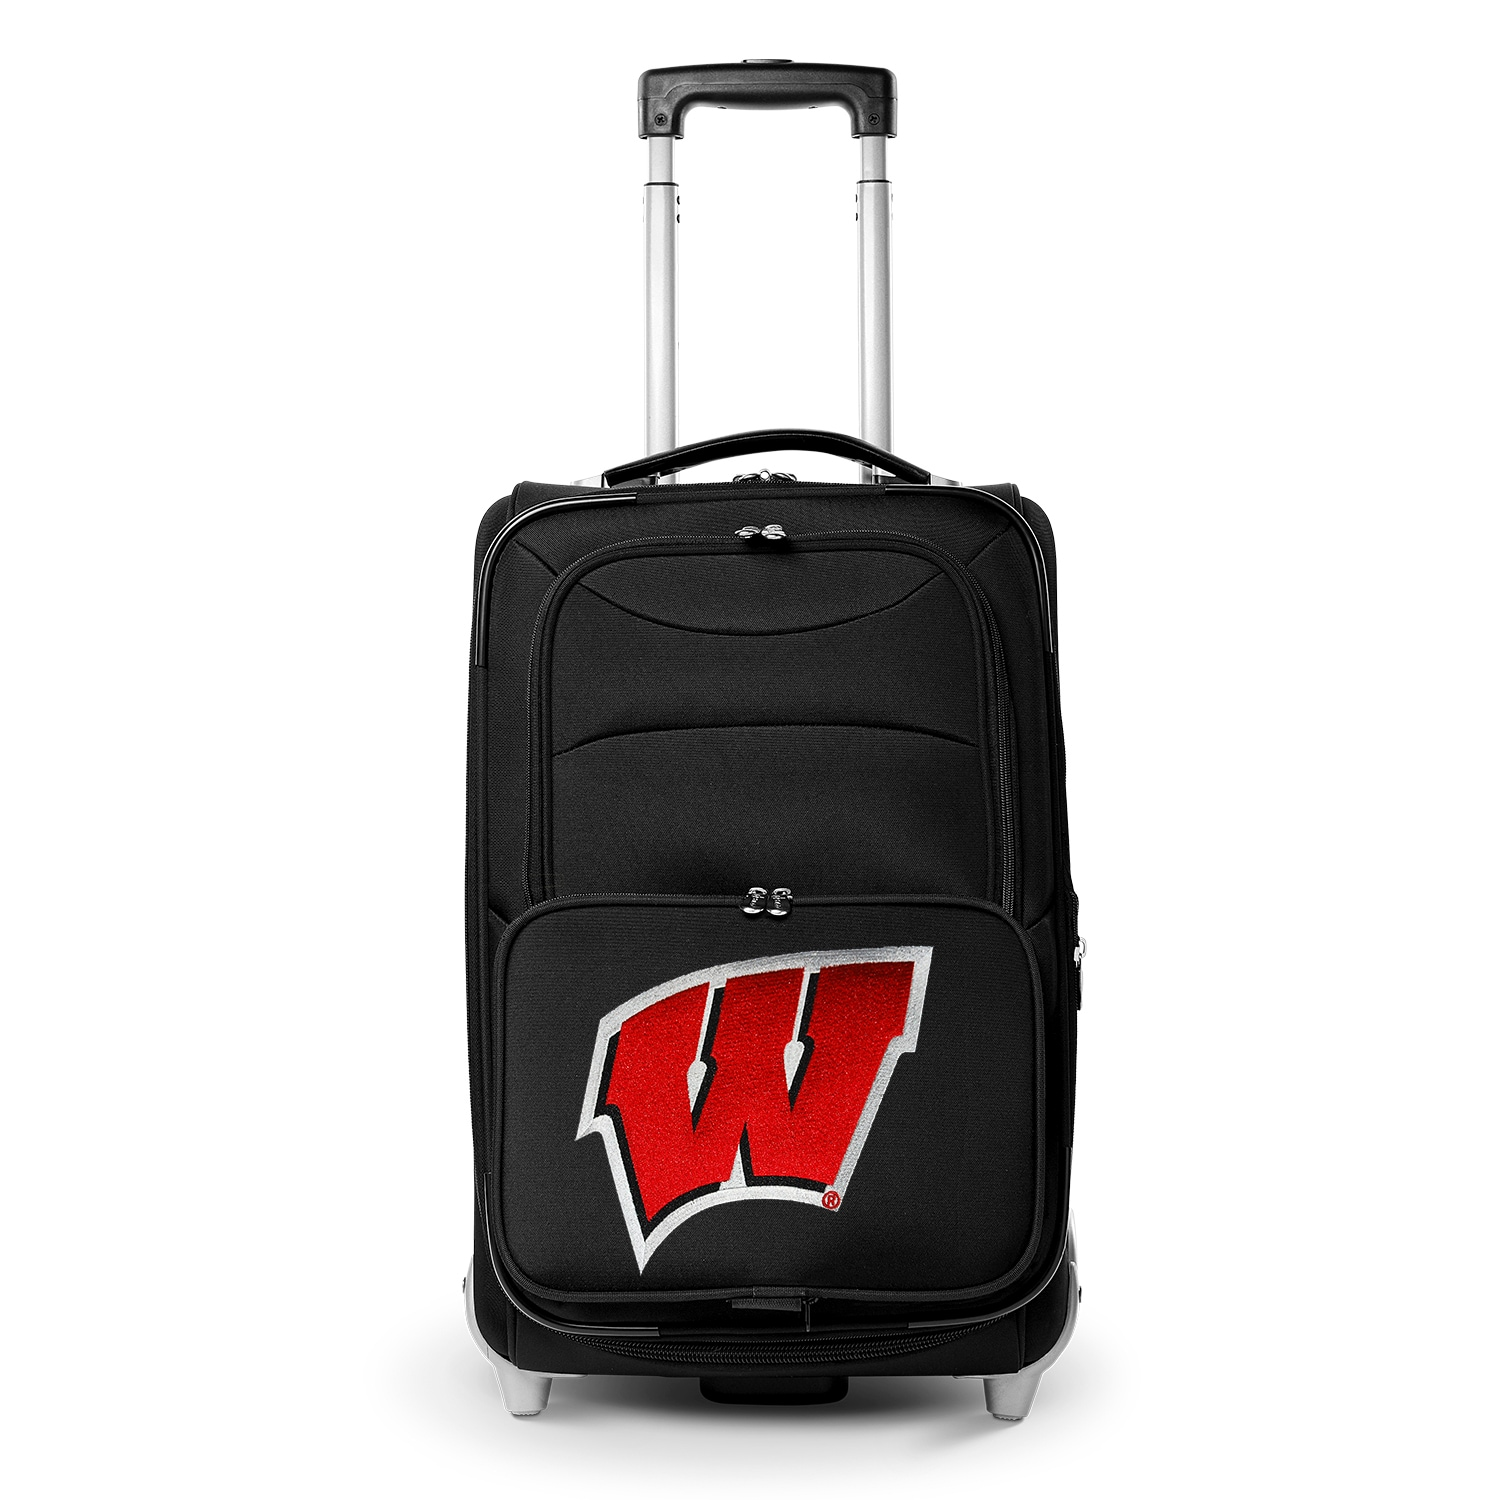 "Wisconsin Badgers 21"" Rolling Carry-On Suitcase"